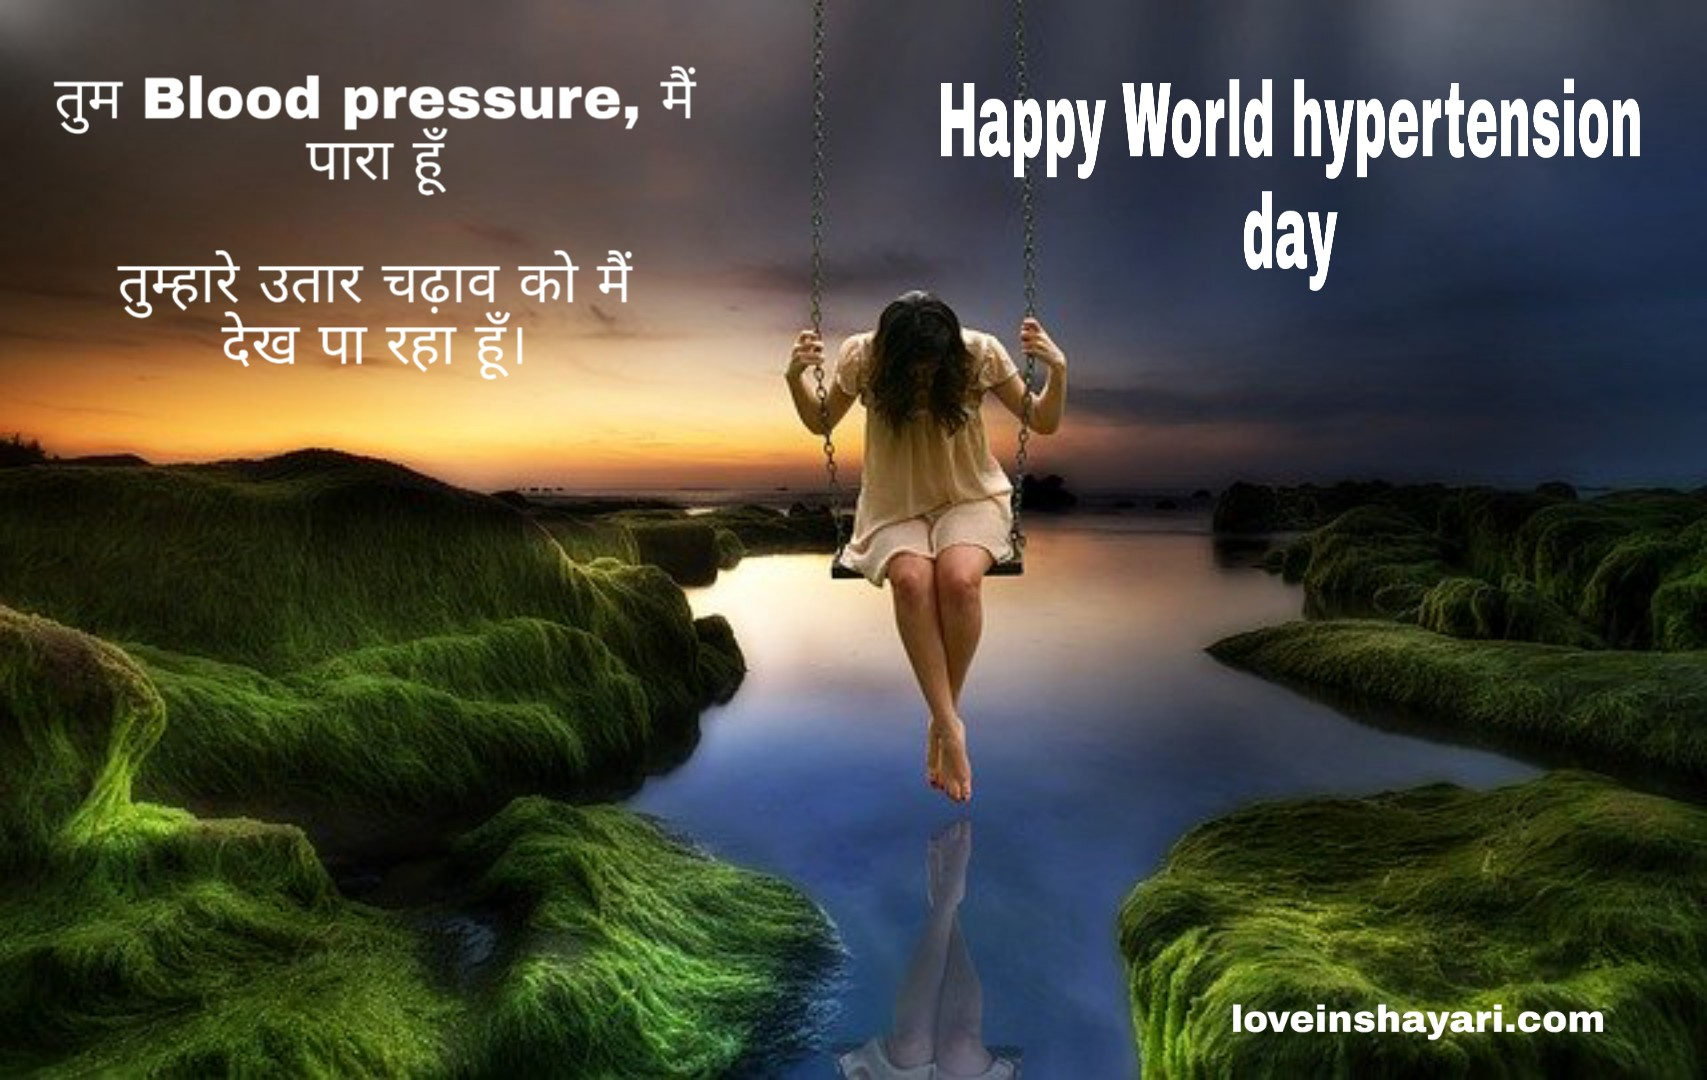 World hypertension day shayari wishes quotes sms